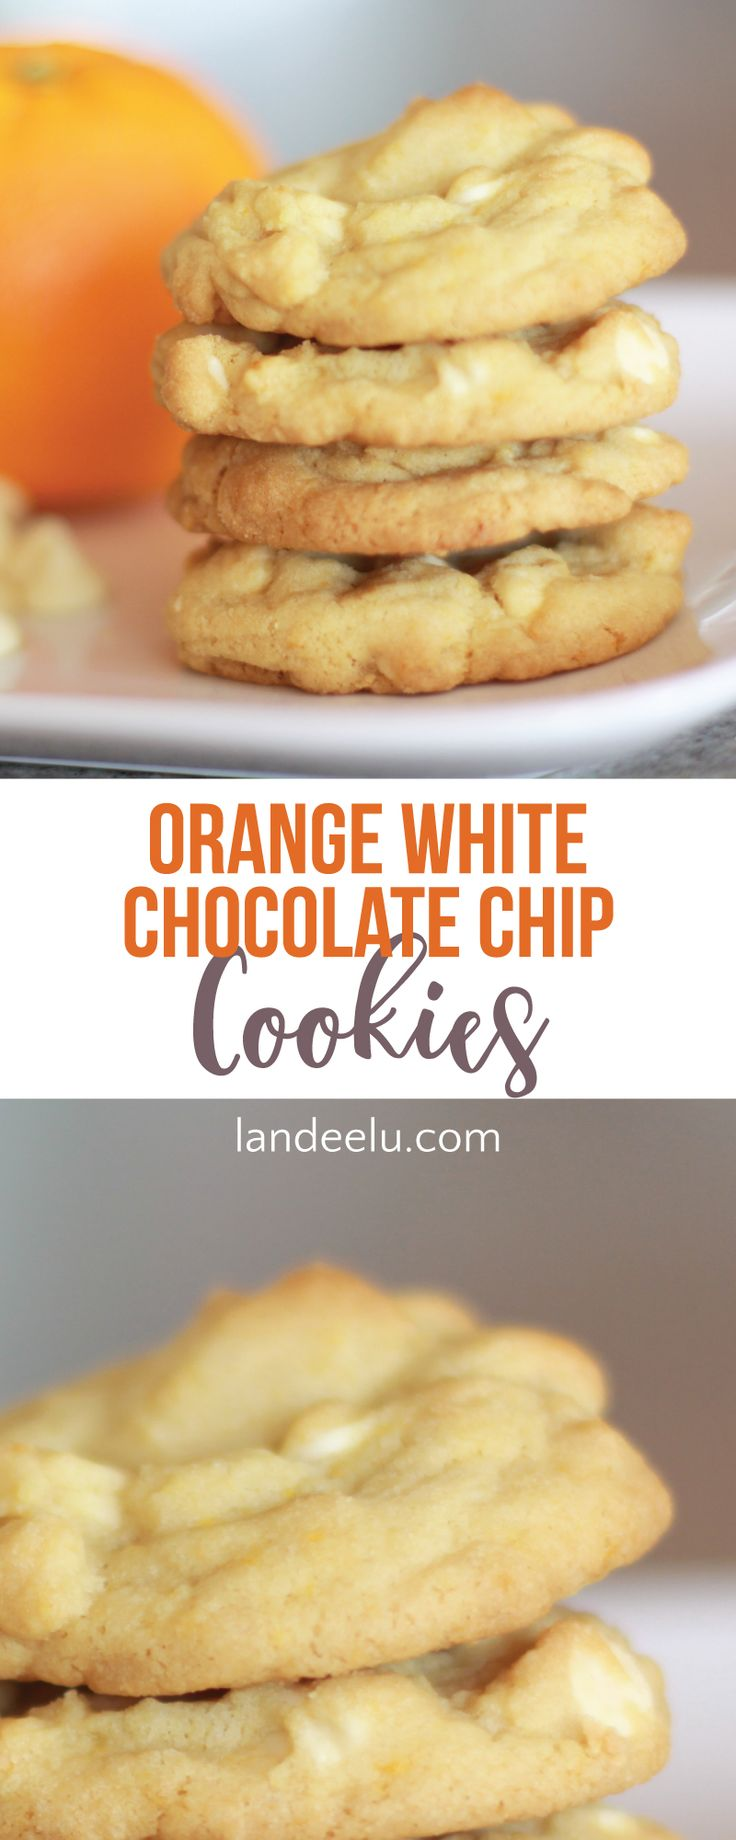 A hint of orange in this white chocolate chip cookie recipe is all you need to make them divine! Like an orange roll but in cookie form. Yum!